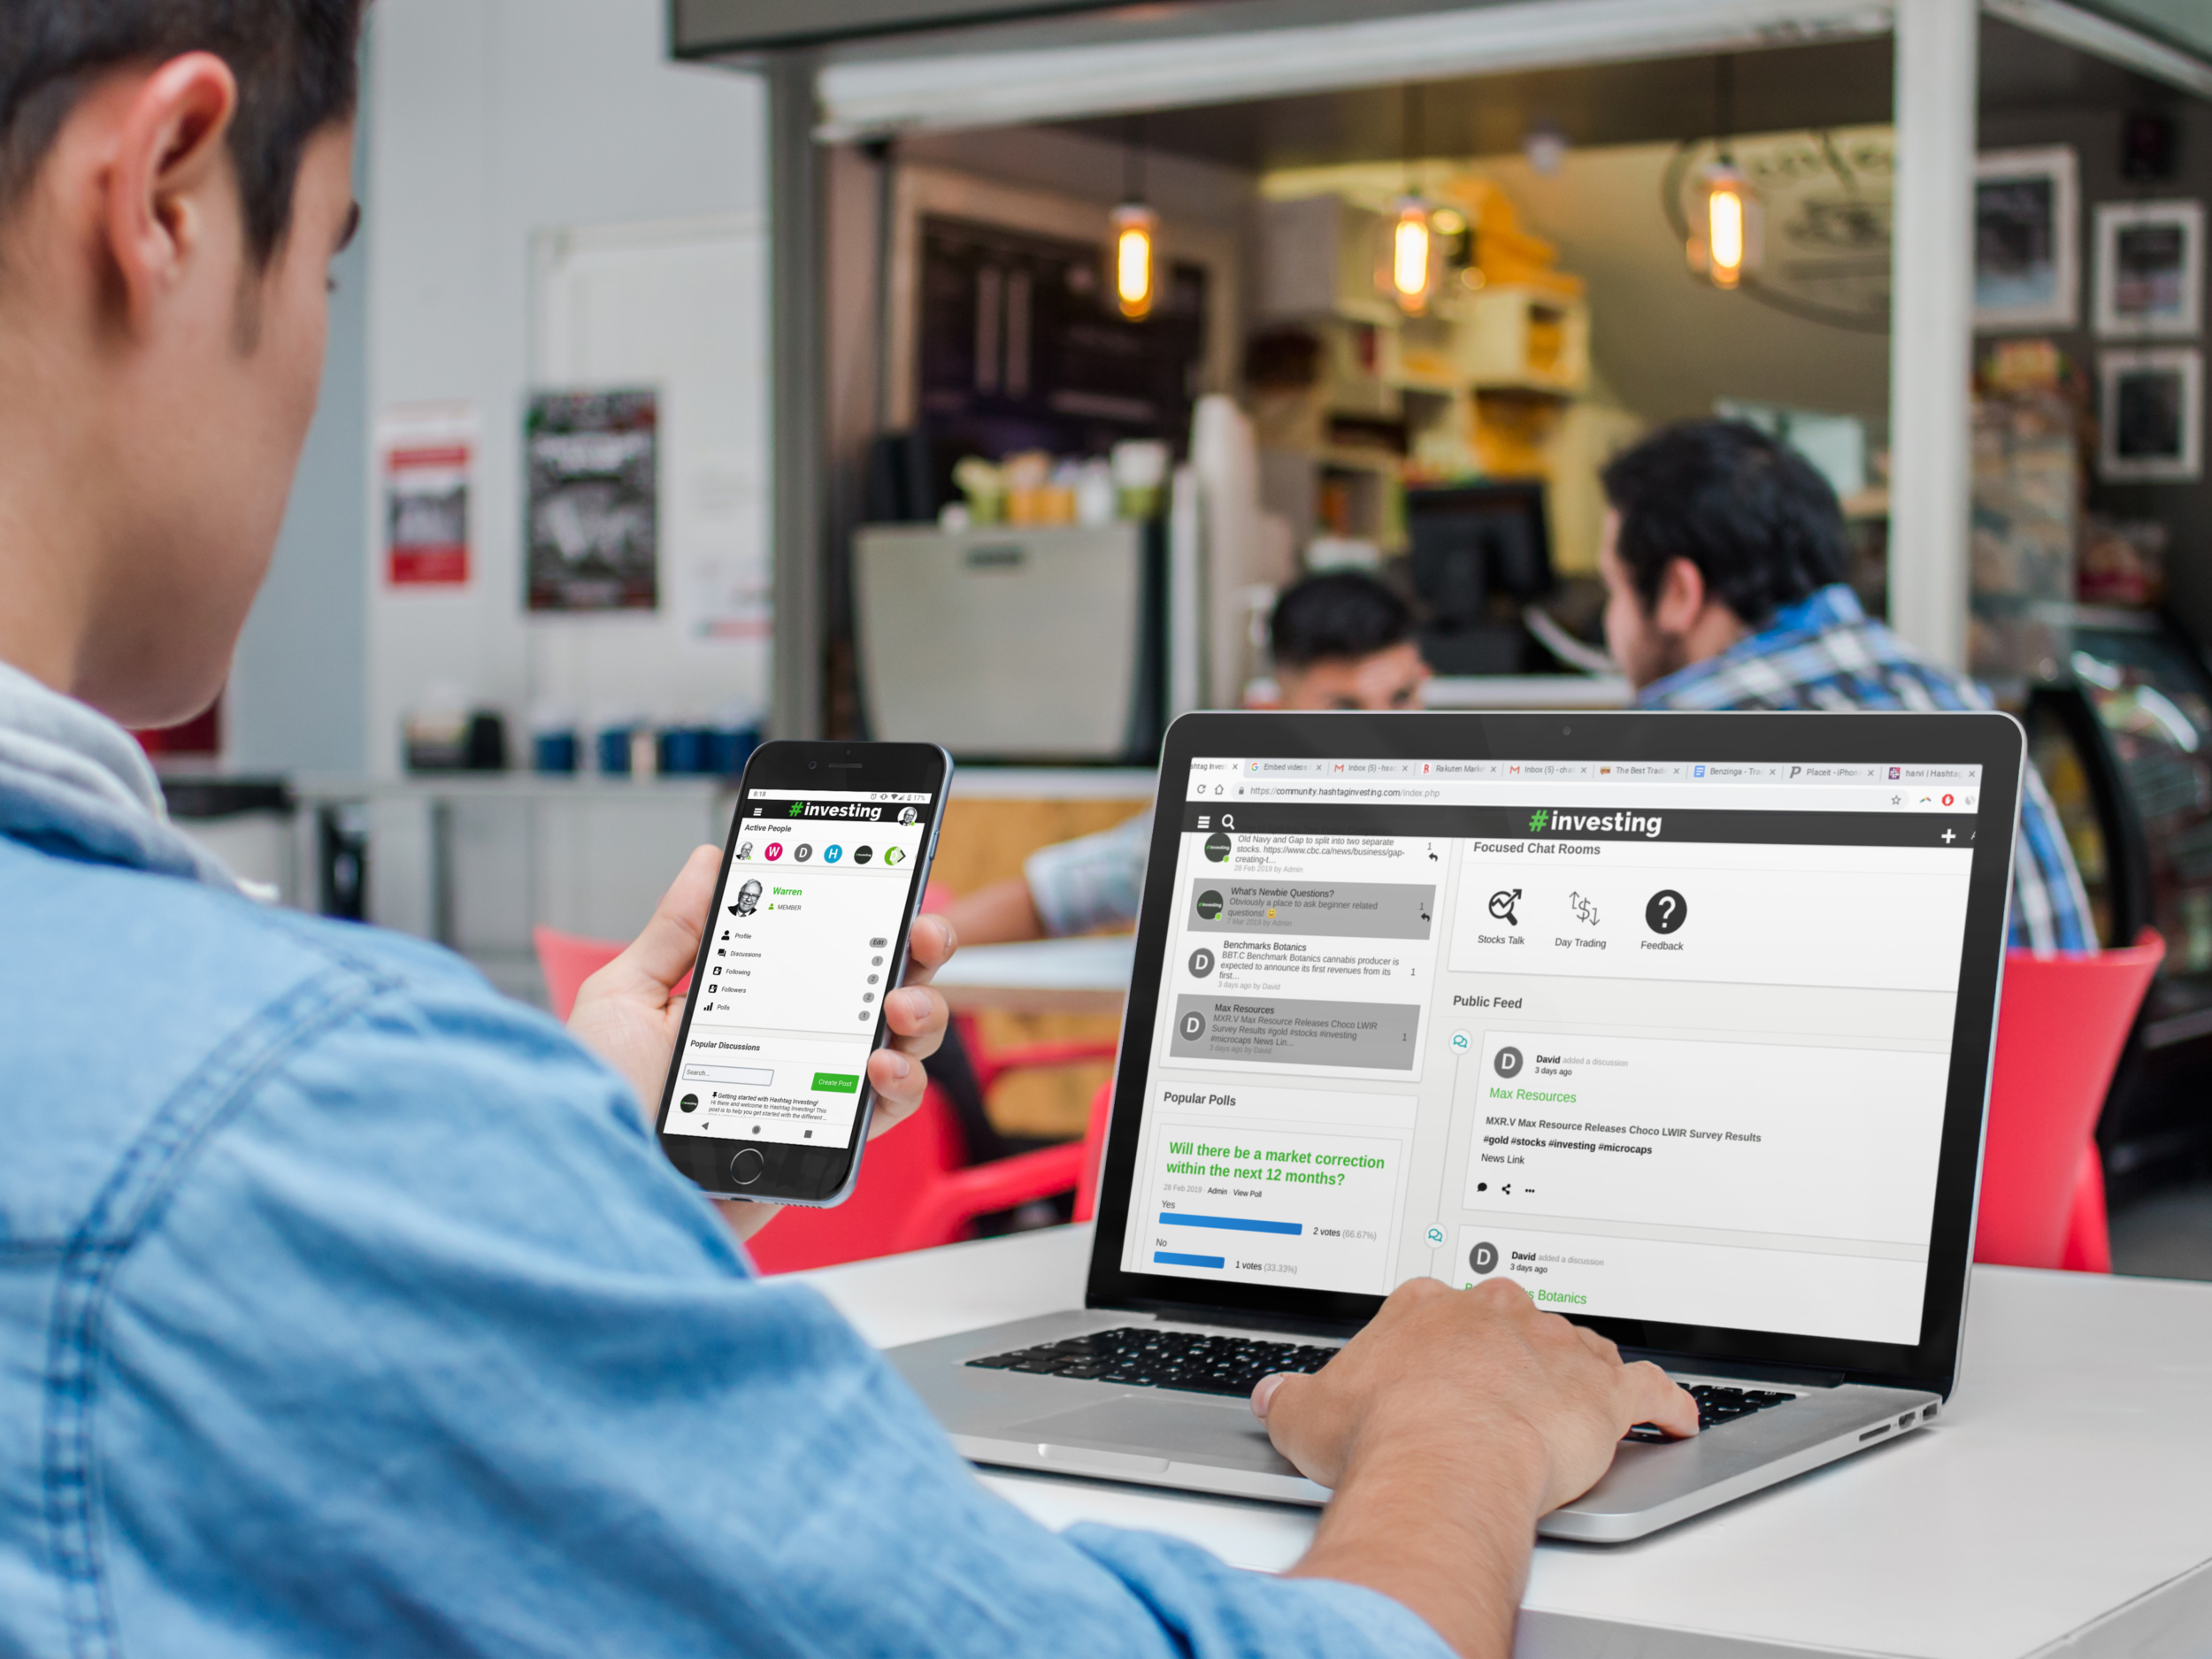 iphone-and-macbook-mockup-of-a-young-man-at-the-cafeteria-a4635.png